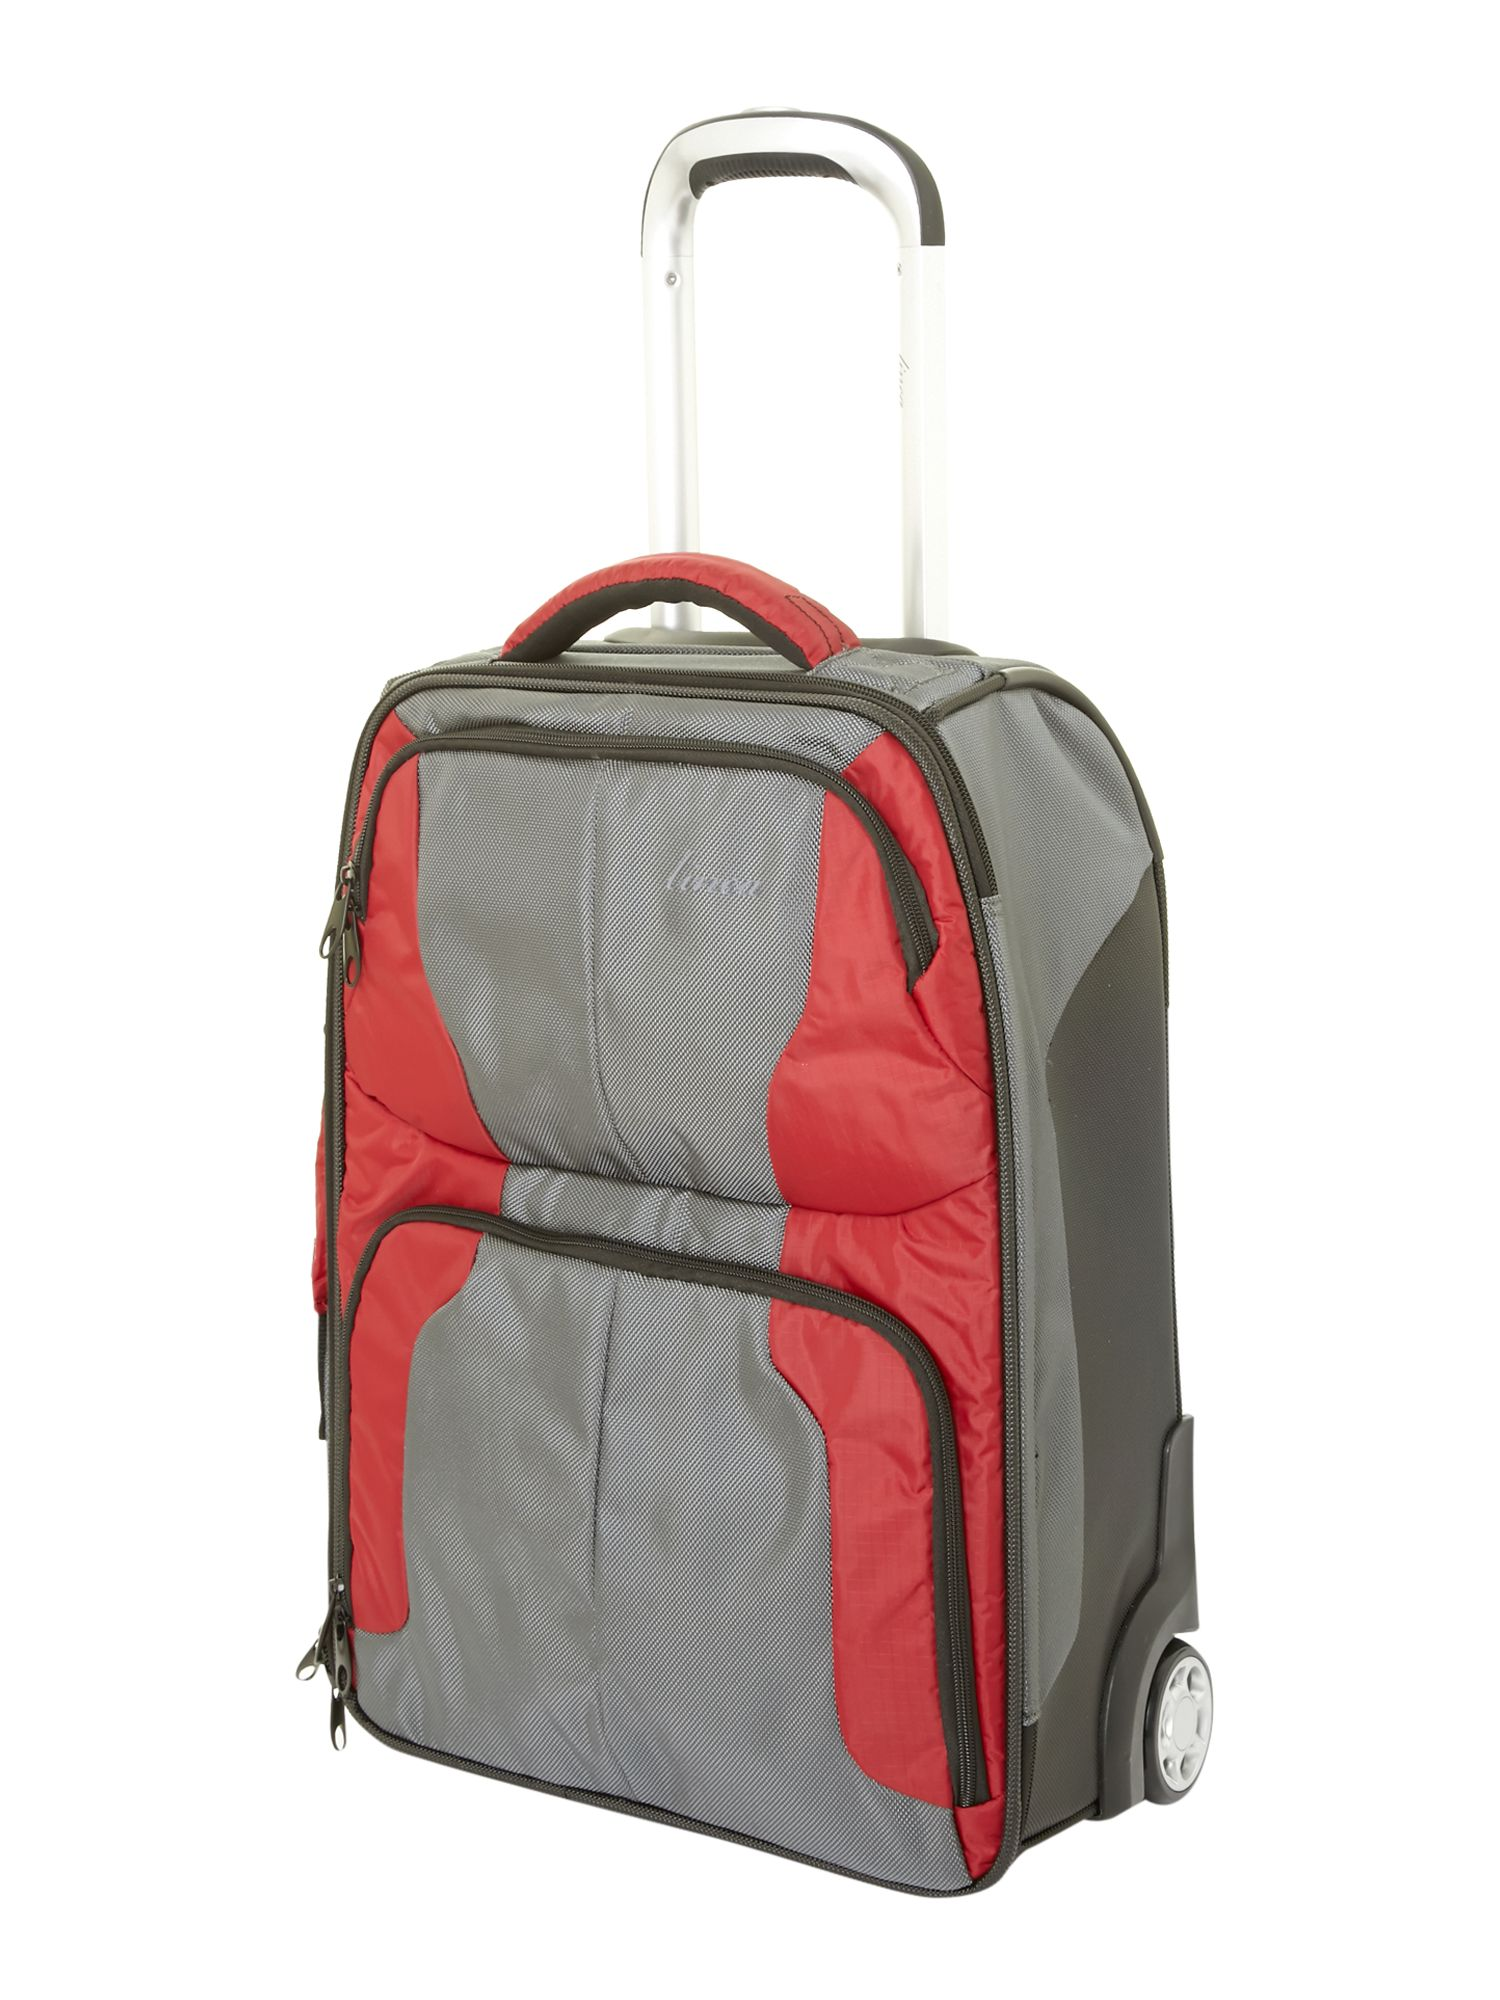 Linea Sml Duffle Red/Charcoal